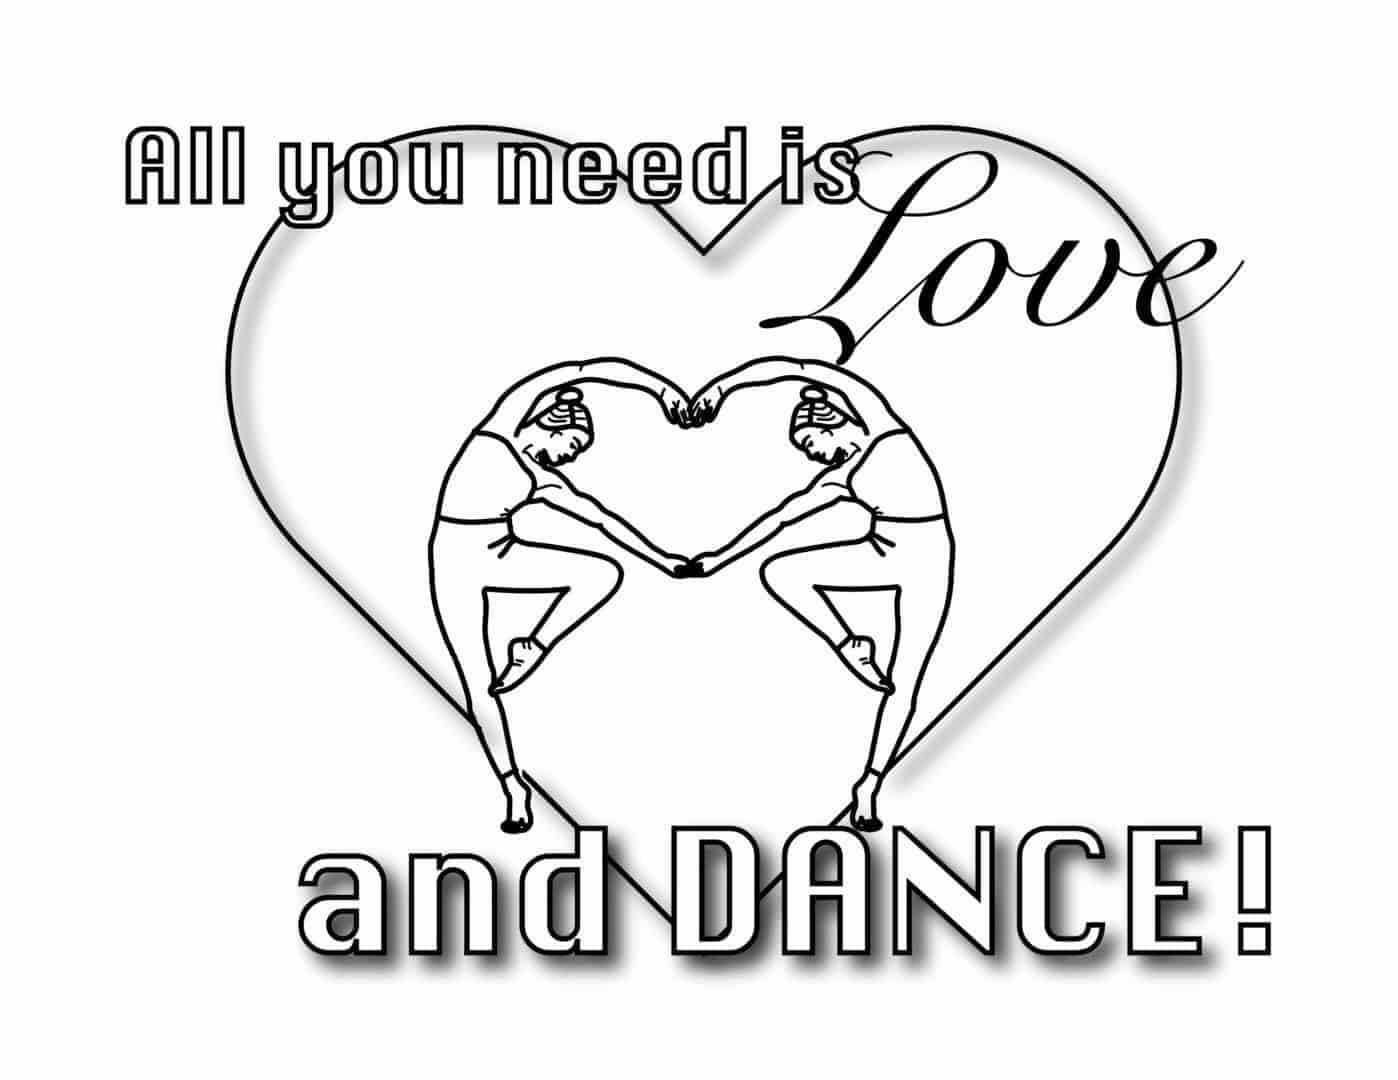 All Your Need is Love 2-01